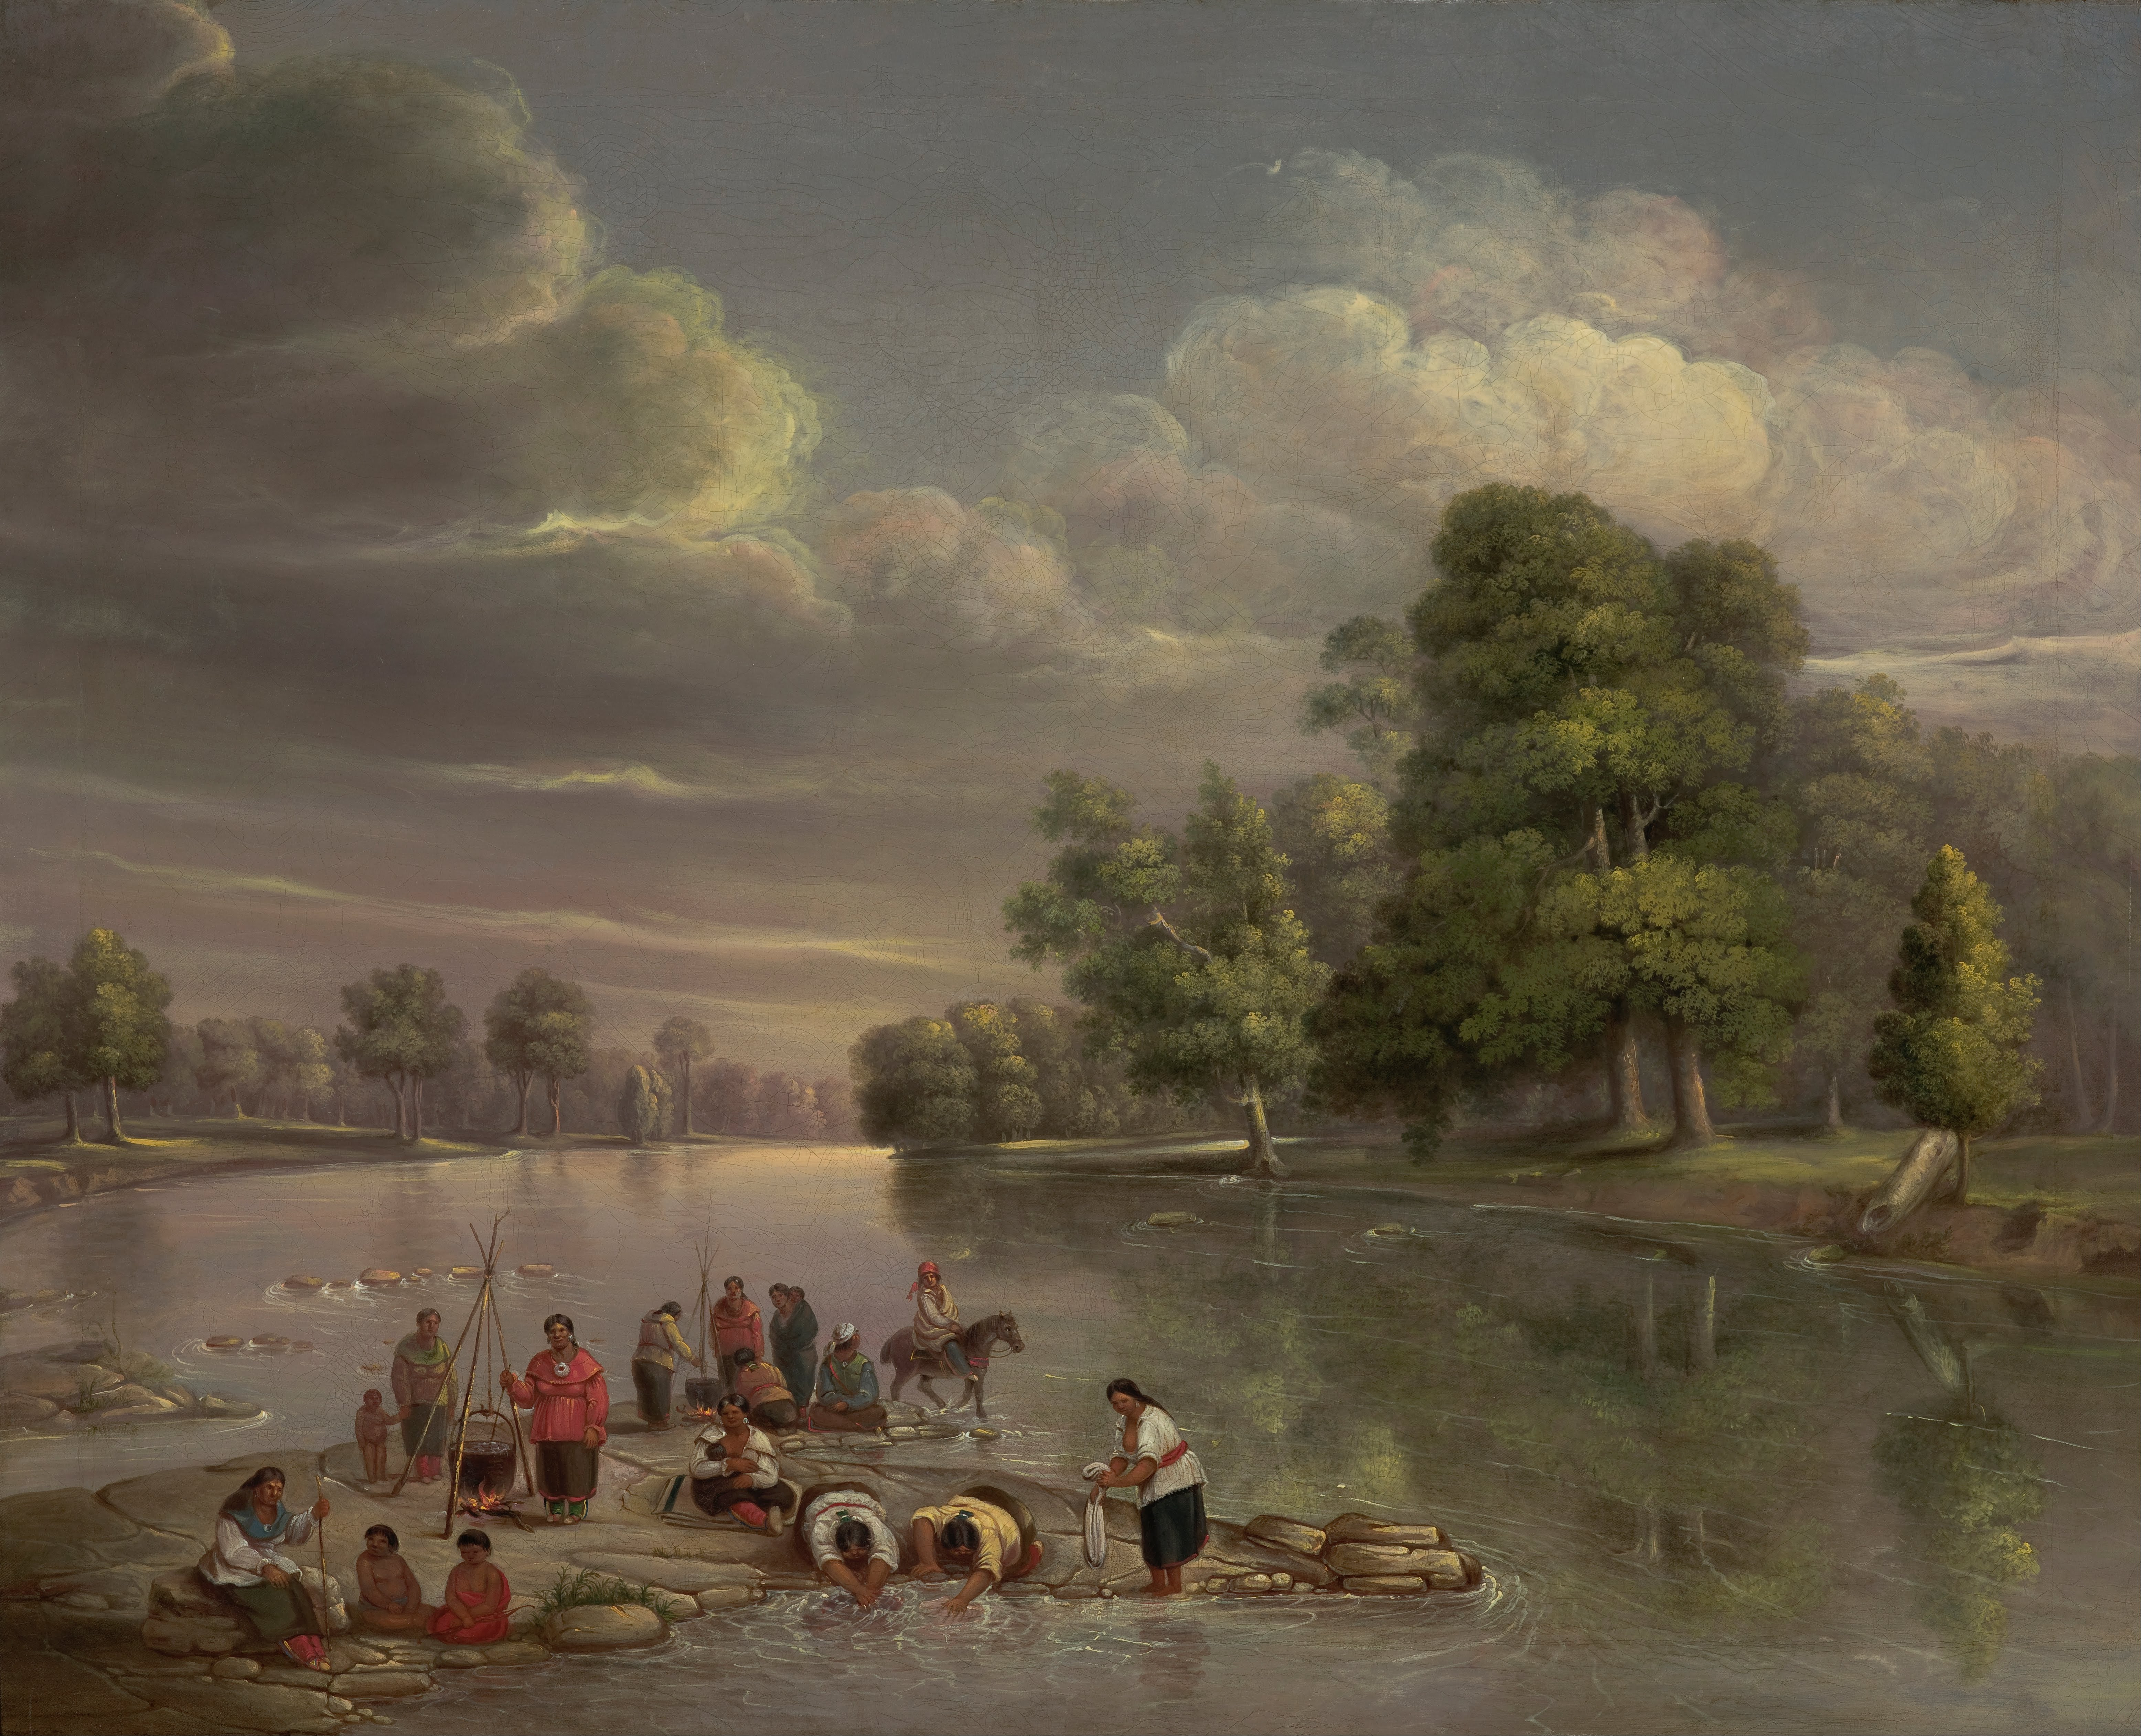 """Scene on the Wabash, 1848"" by George Winter Depicts Potawatomi people cooking and washing on the Wabash river, near Logansport."